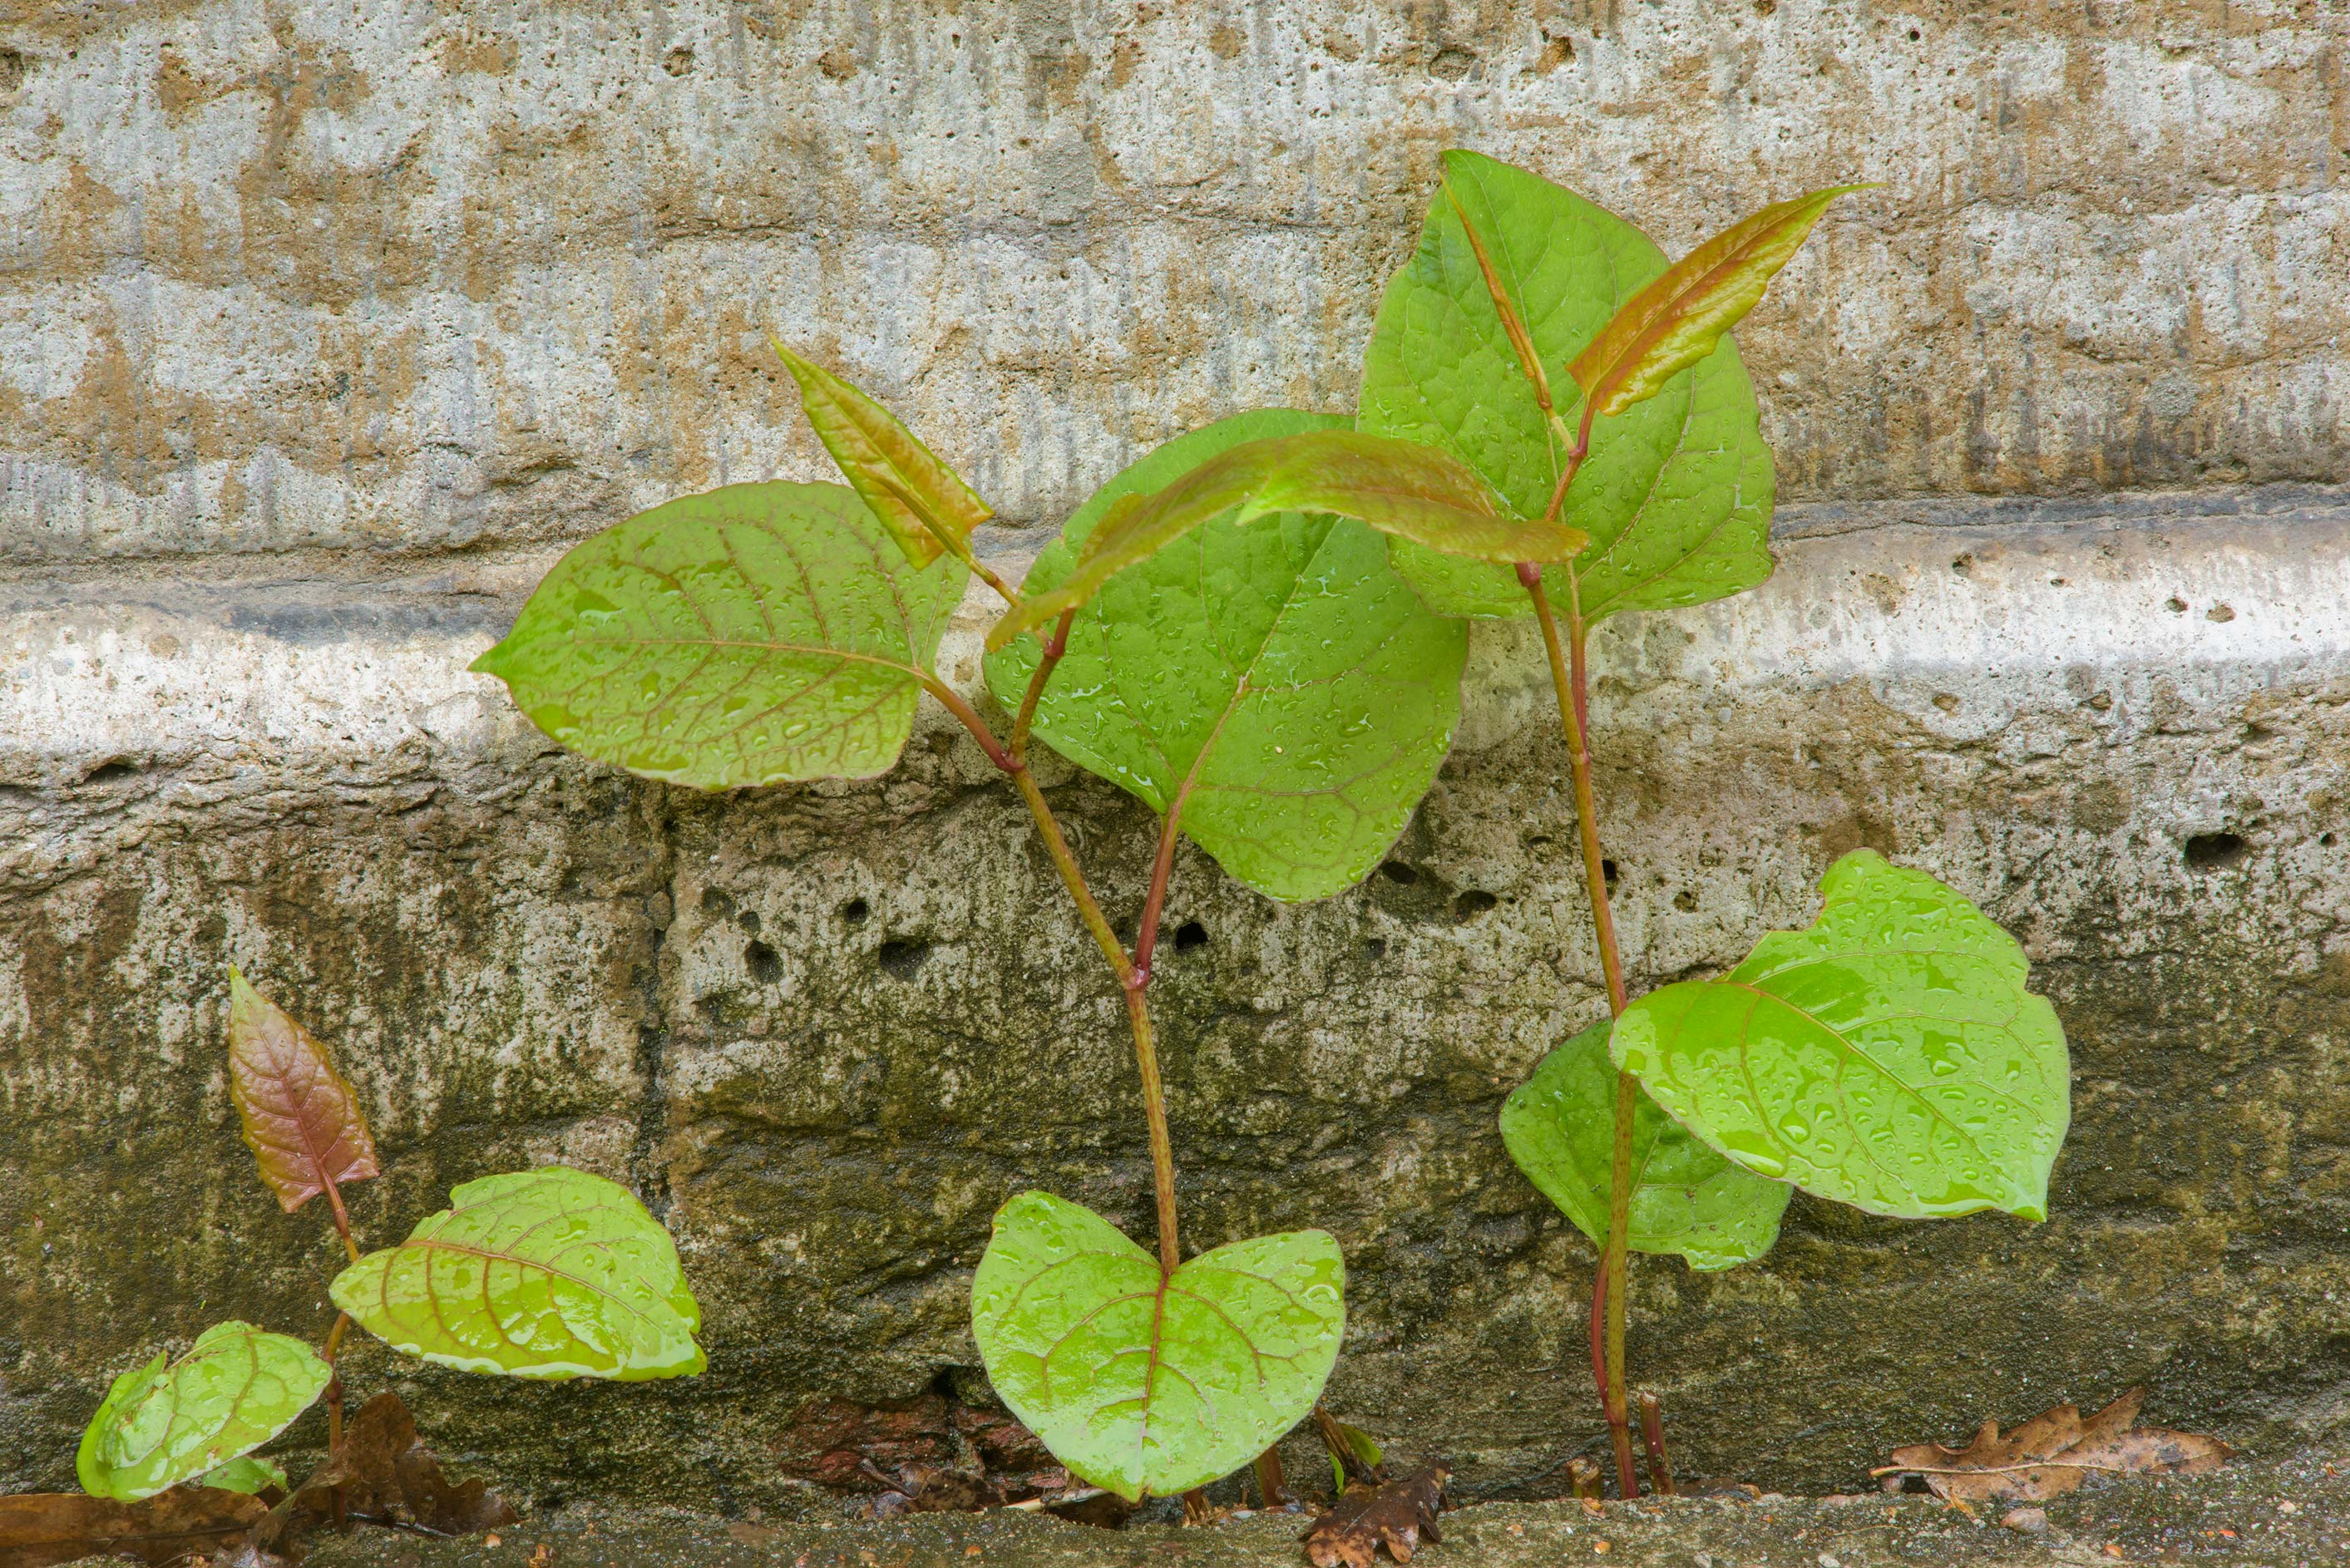 Shoots of giant knotweed (Polygonum sachalinense...Institute. St.Petersburg, Russia